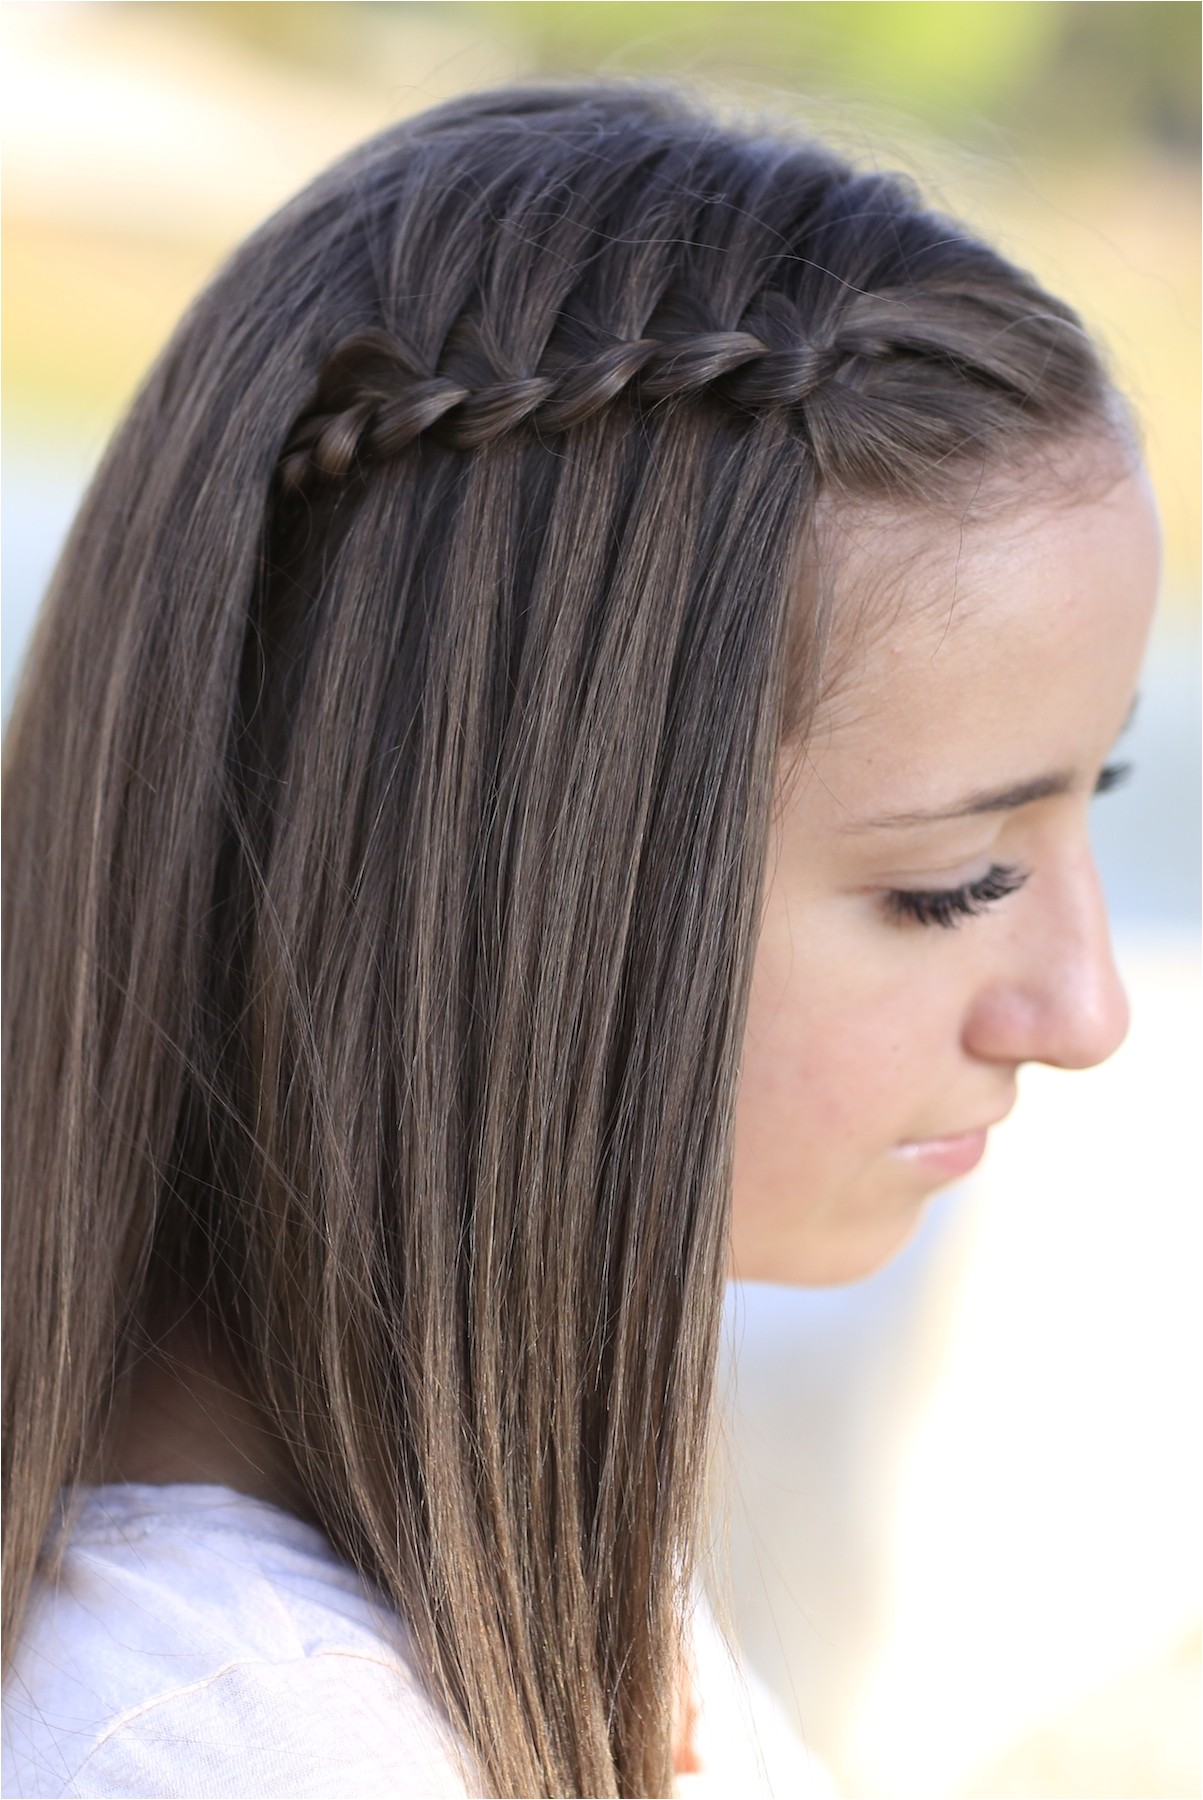 ideas for cute hairstyles for 13 year olds